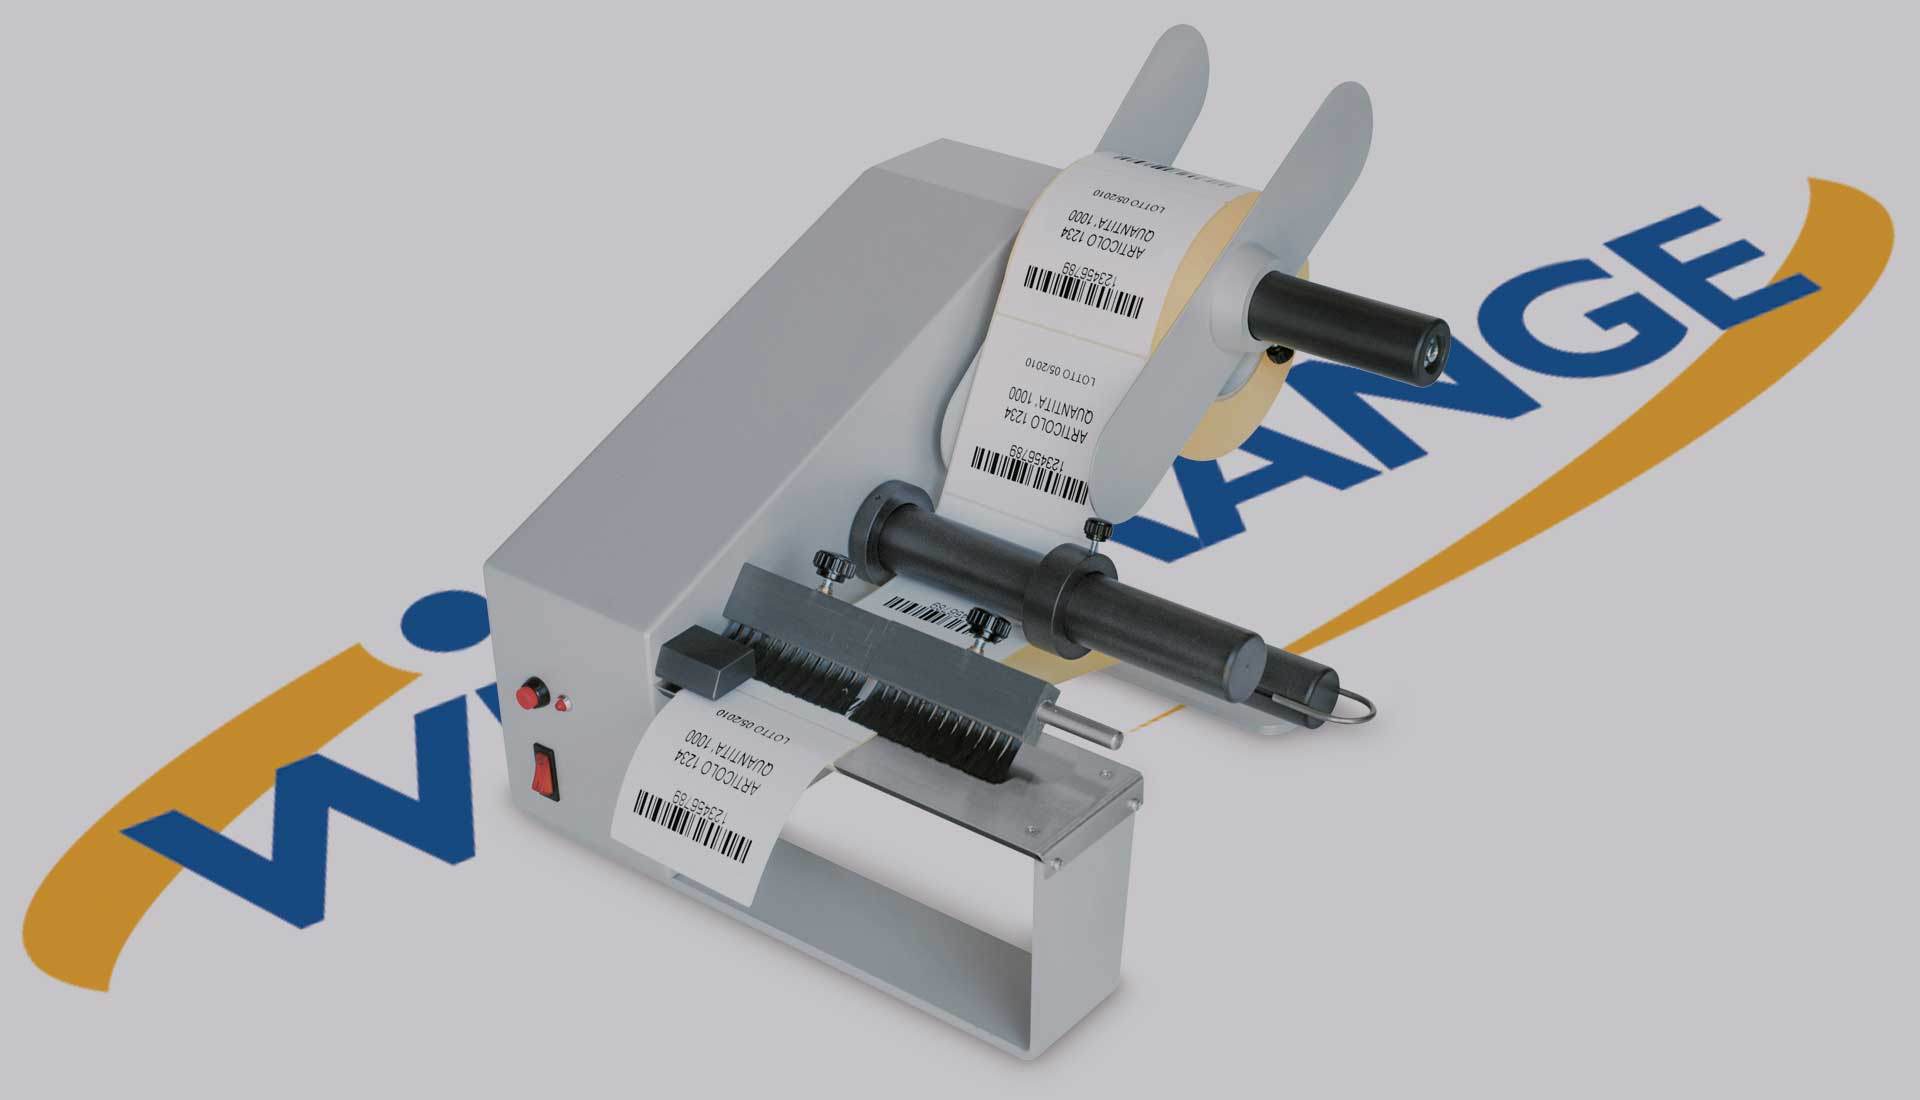 DWR Self-Adhesive Label Dispenser